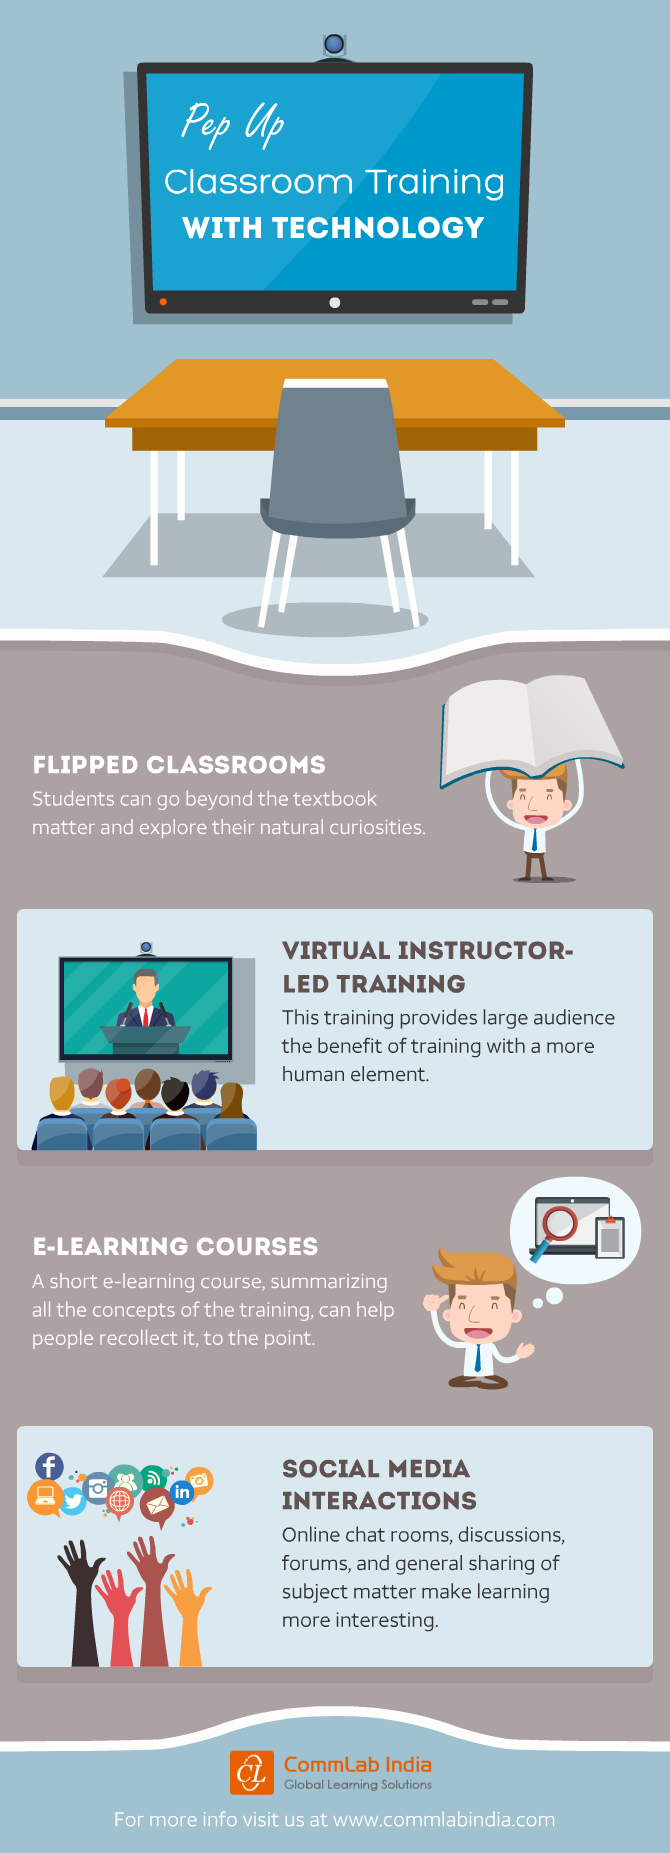 Pep Up Classroom Training with Technology [Infographic]